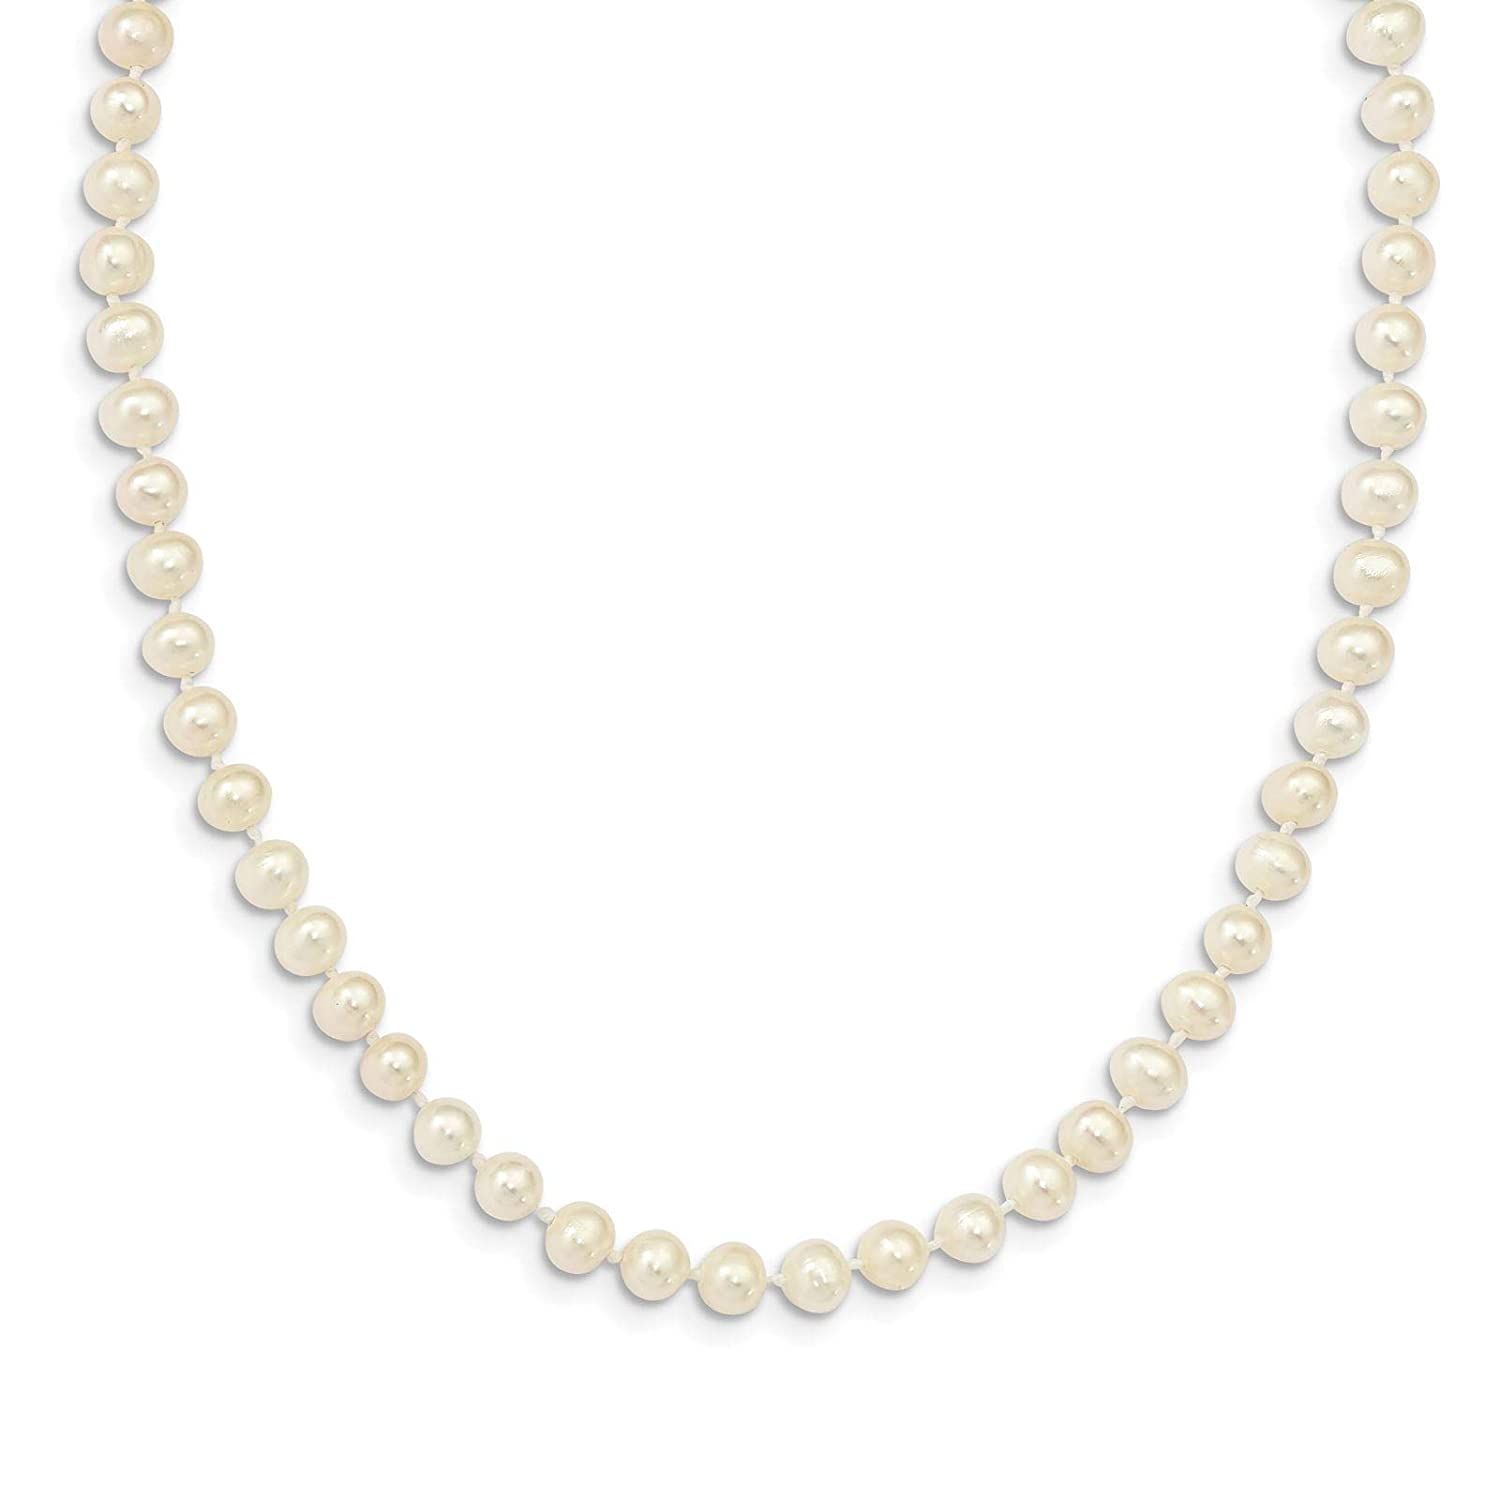 925 Sterling Silver Rhodium-plated 5-6mm Freshwater Cultured Pearl Necklace 14 w// 2 Extender by Madi K